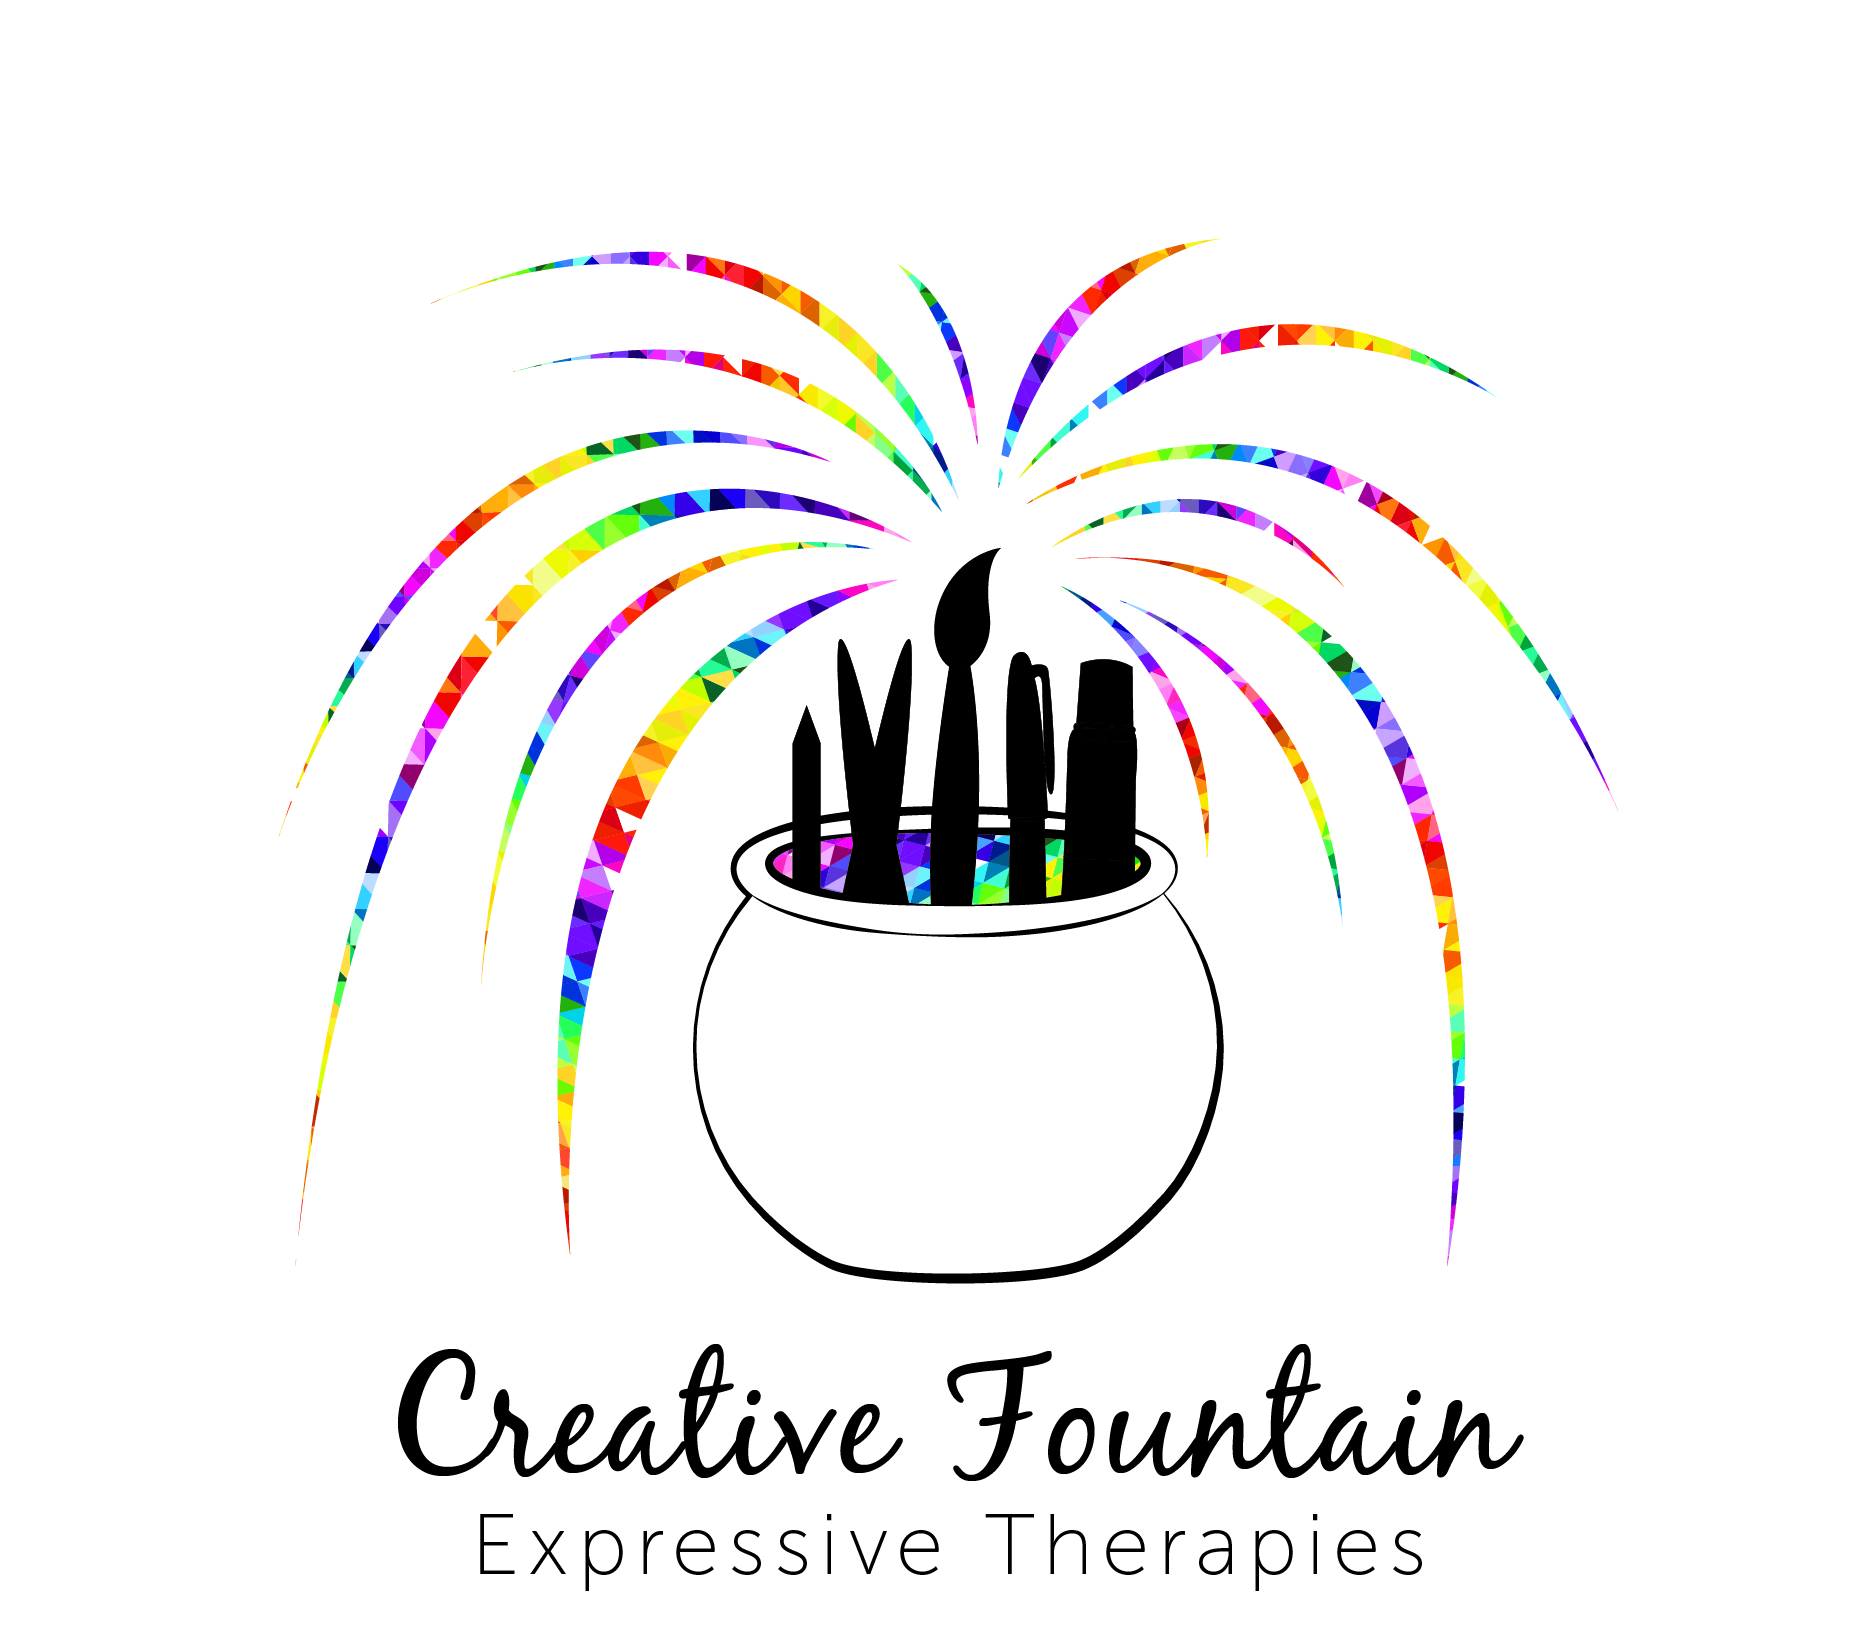 Creative Fountain Expressive Therapies